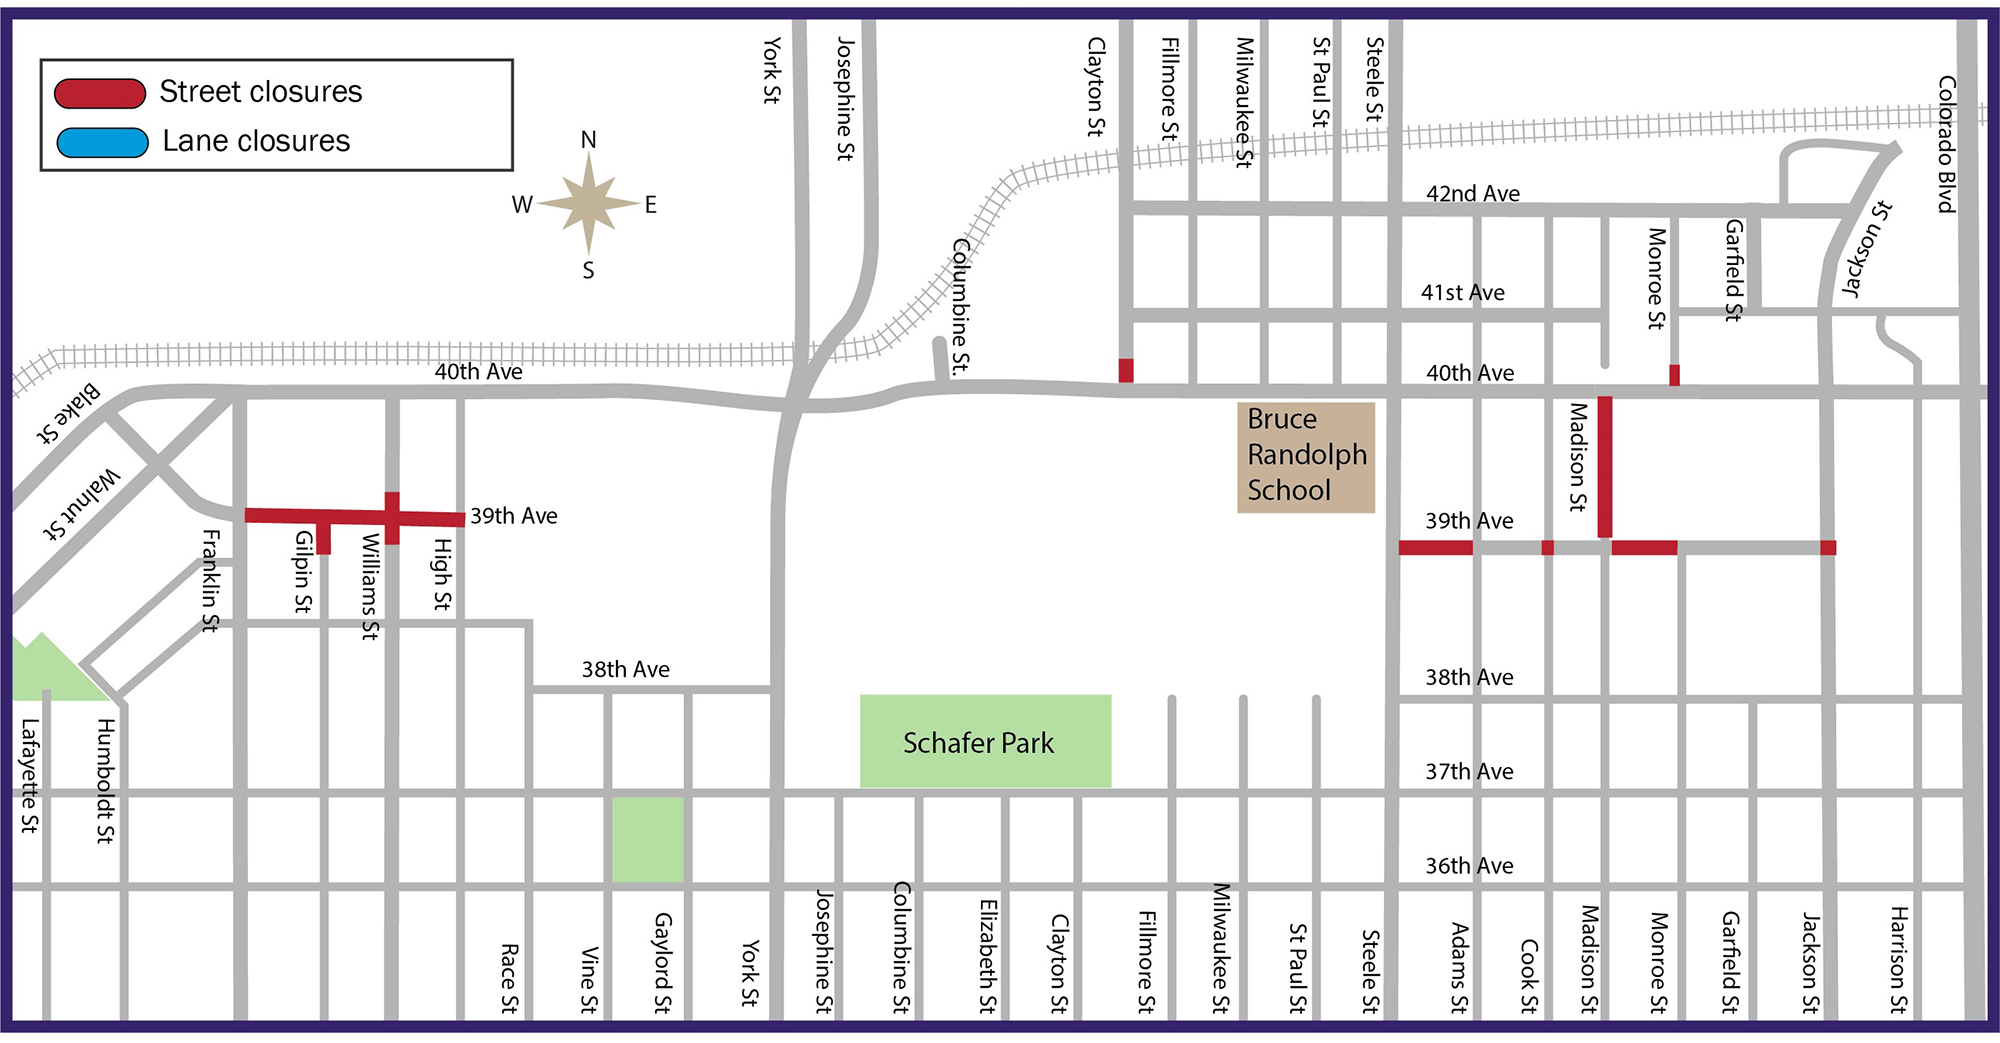 map showing current closures around 39th Avenue work sites